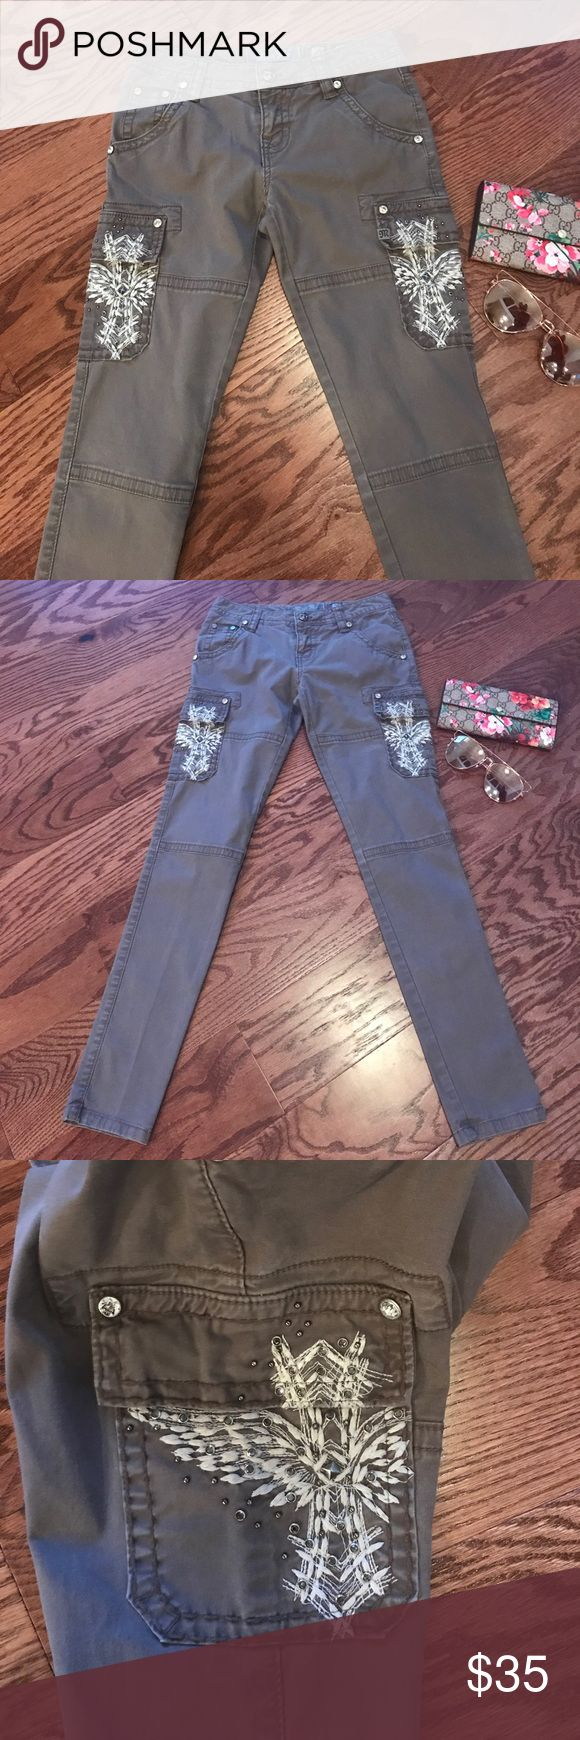 Miss Me skinny stretch cropped cargo pants These are super cute cargo skinny pants. Has cross & rhinestone accent in side pockets . Cotton & spandex blend . Color is khaki . Cropped style  above the ankle but not capris Miss Me Pants Skinny